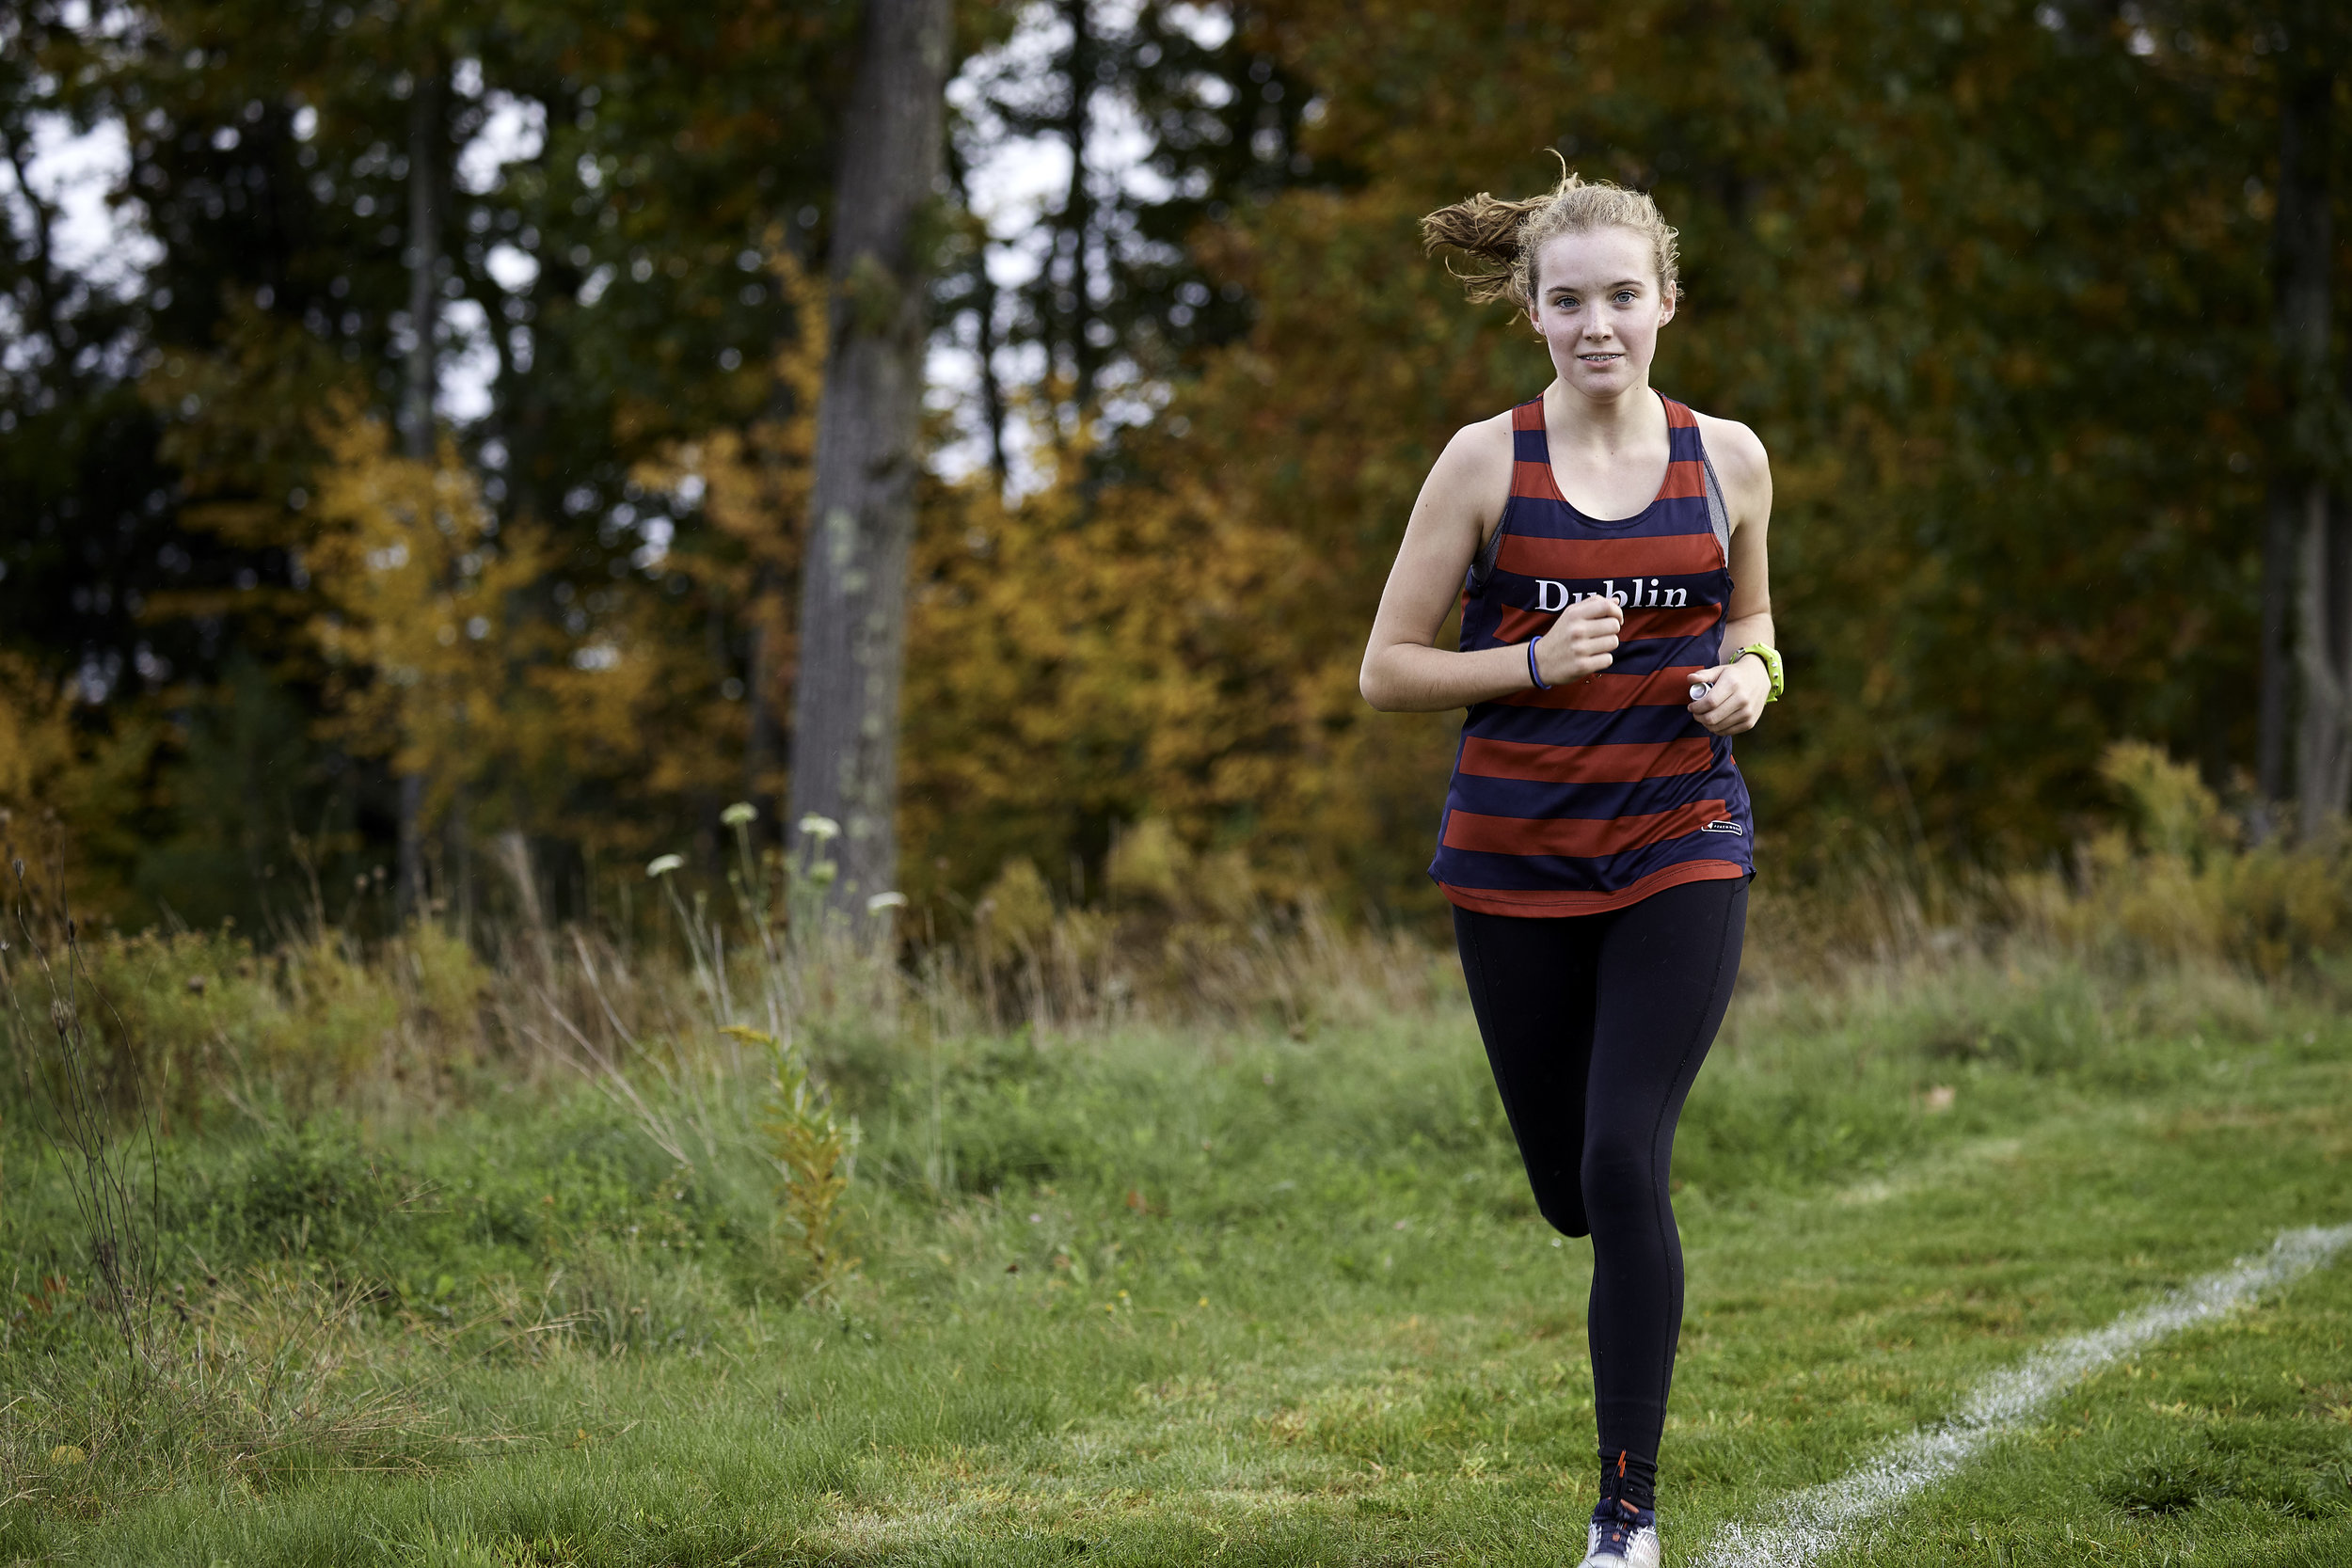 Dublion Invitational - October 12, 2018 - 136584.jpg